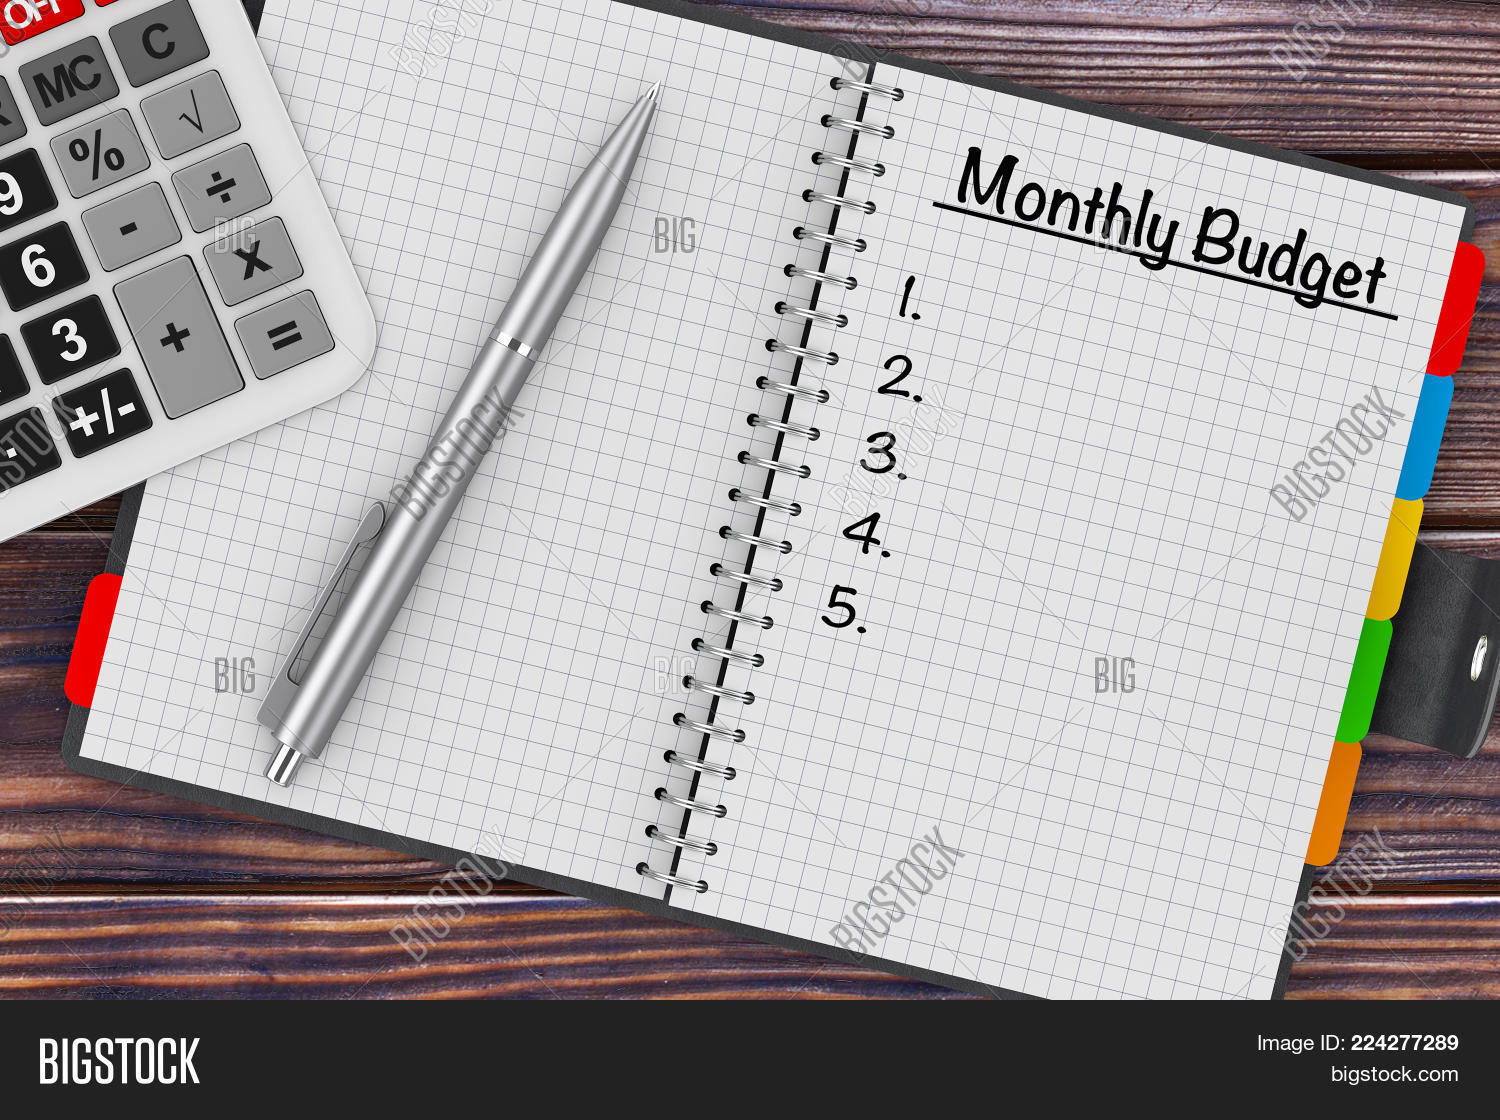 monthly budget powerpoint template monthly budget powerpoint